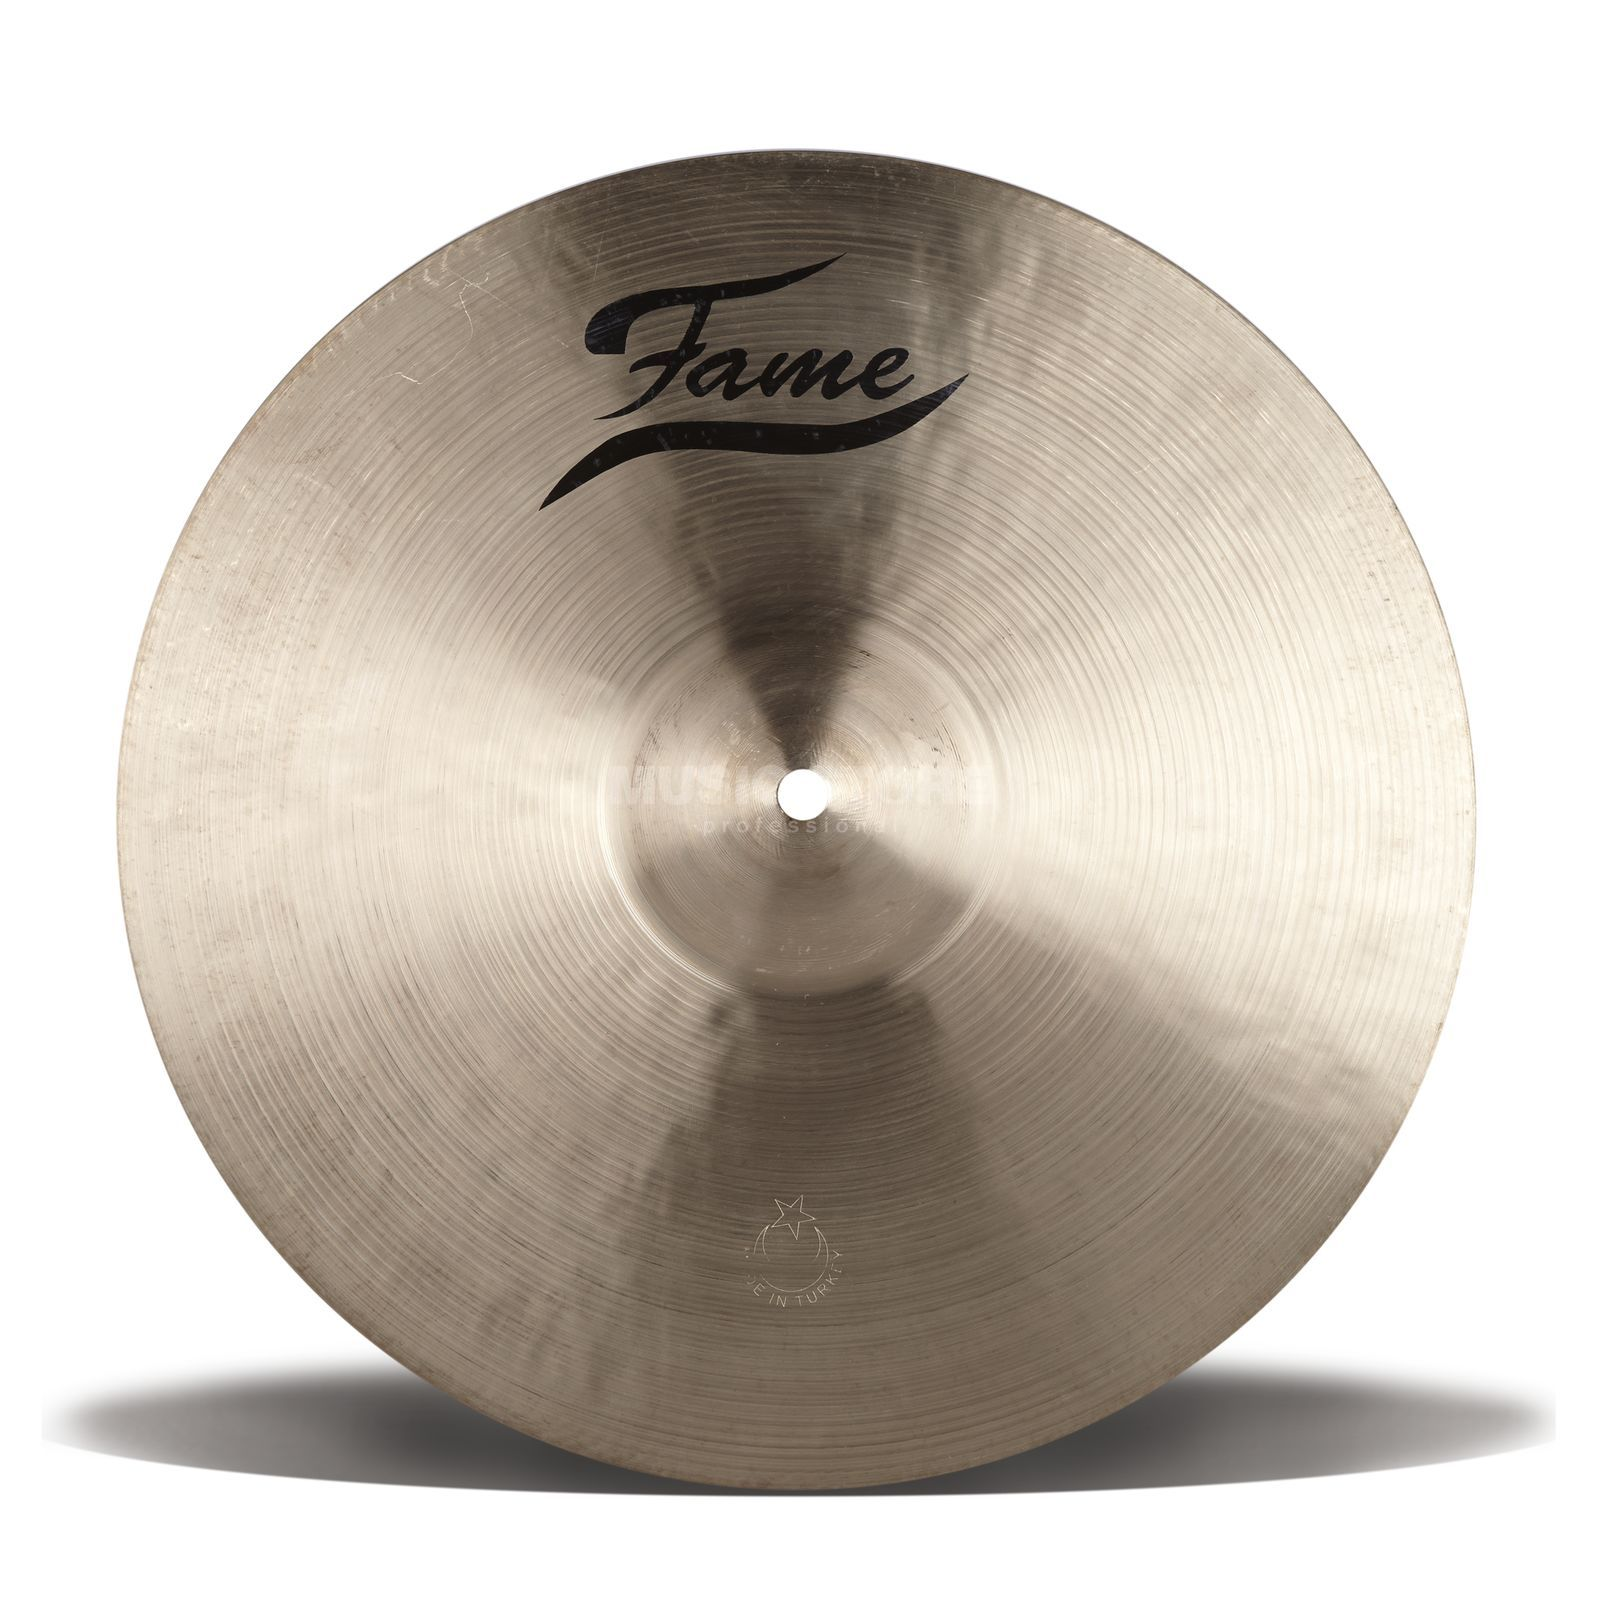 "Fame Masters B20 Light HiHat 14"", Natural Finish Produktbild"